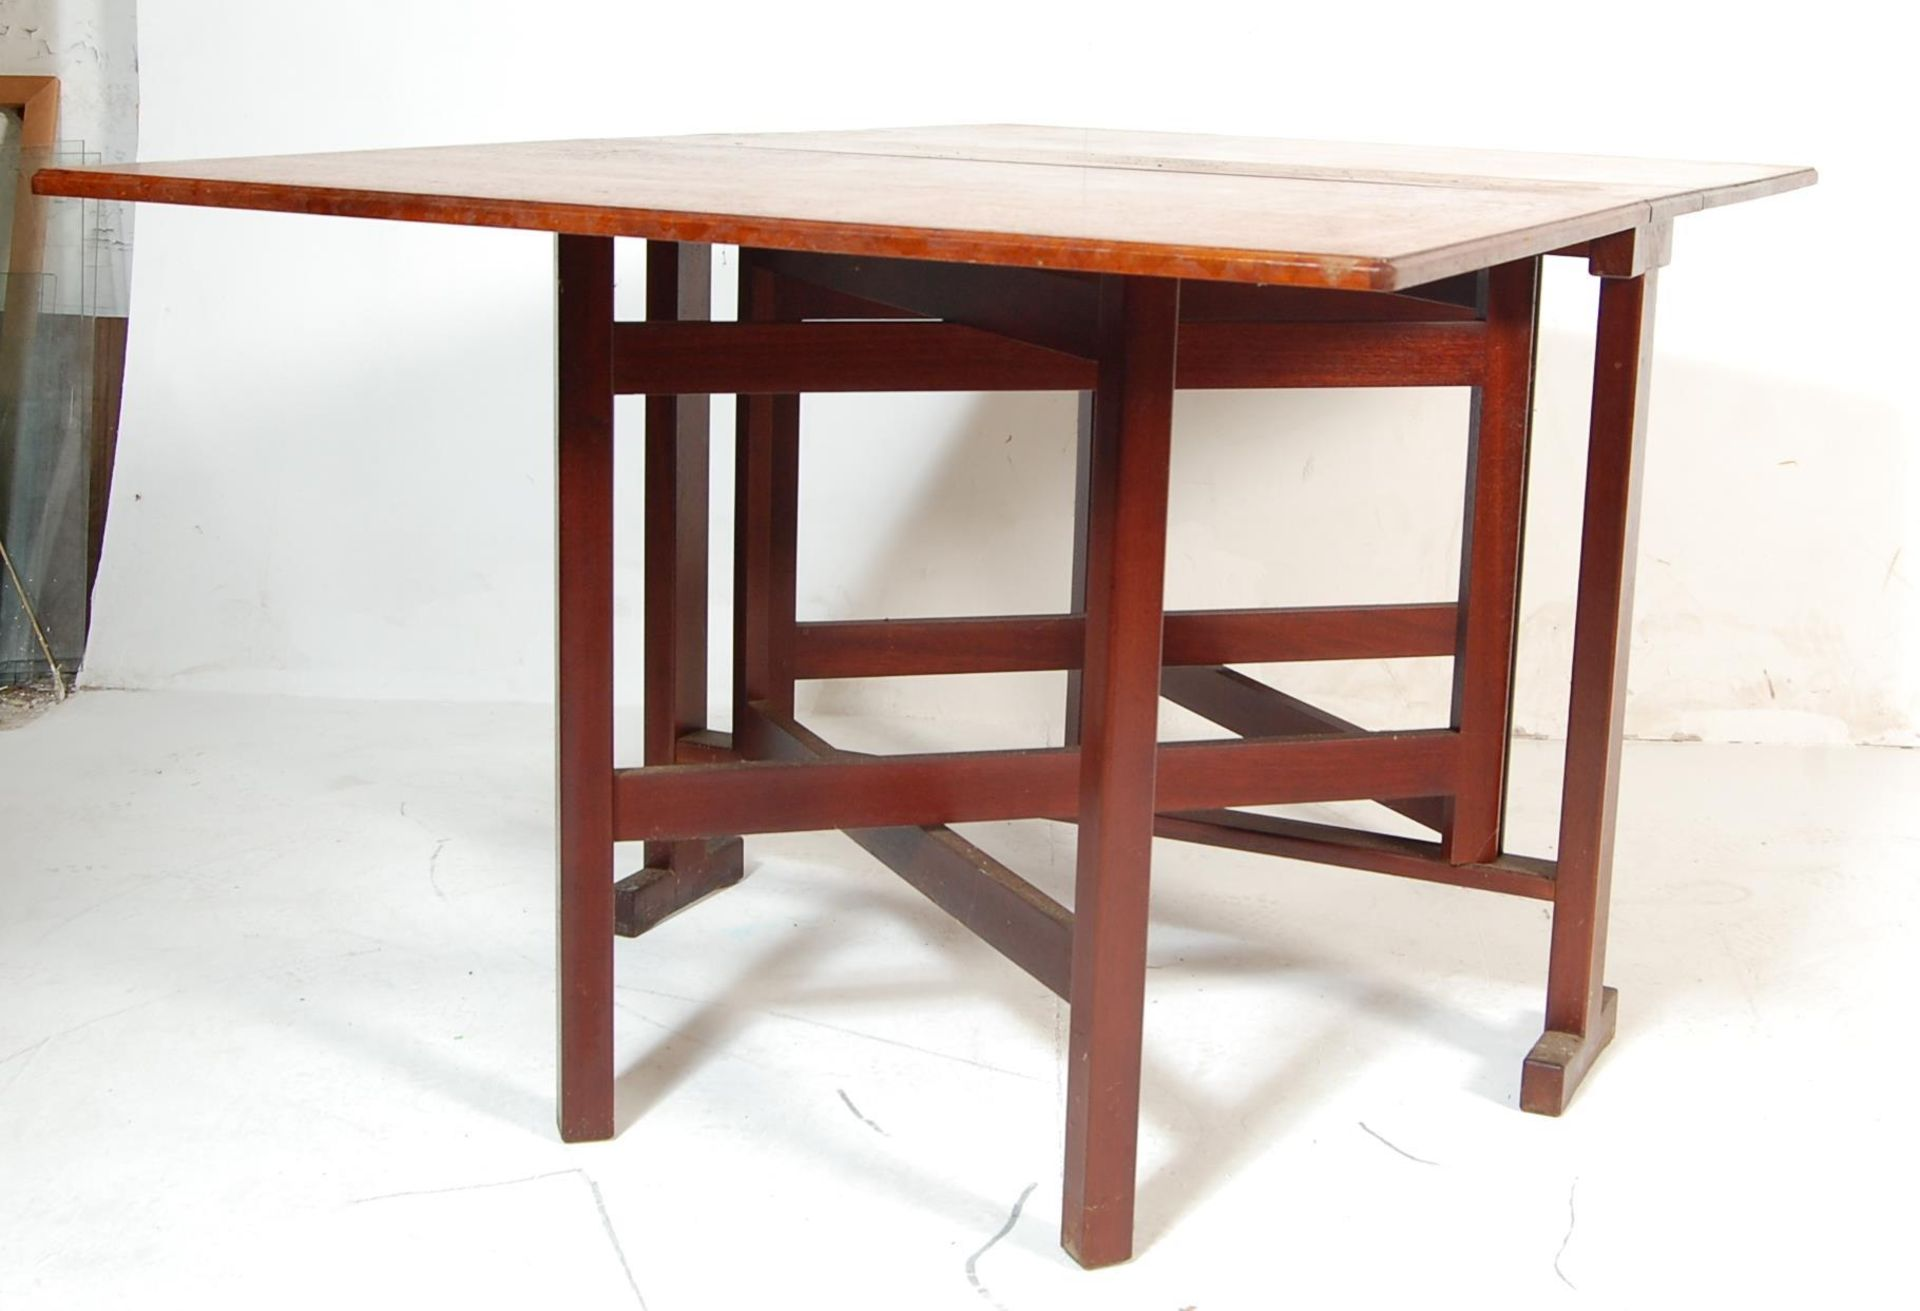 VINTAGE 20TH CENTURY TEAK WOOD DANISH INSPIRED DROP LEAF DINING TABLE - Image 2 of 5